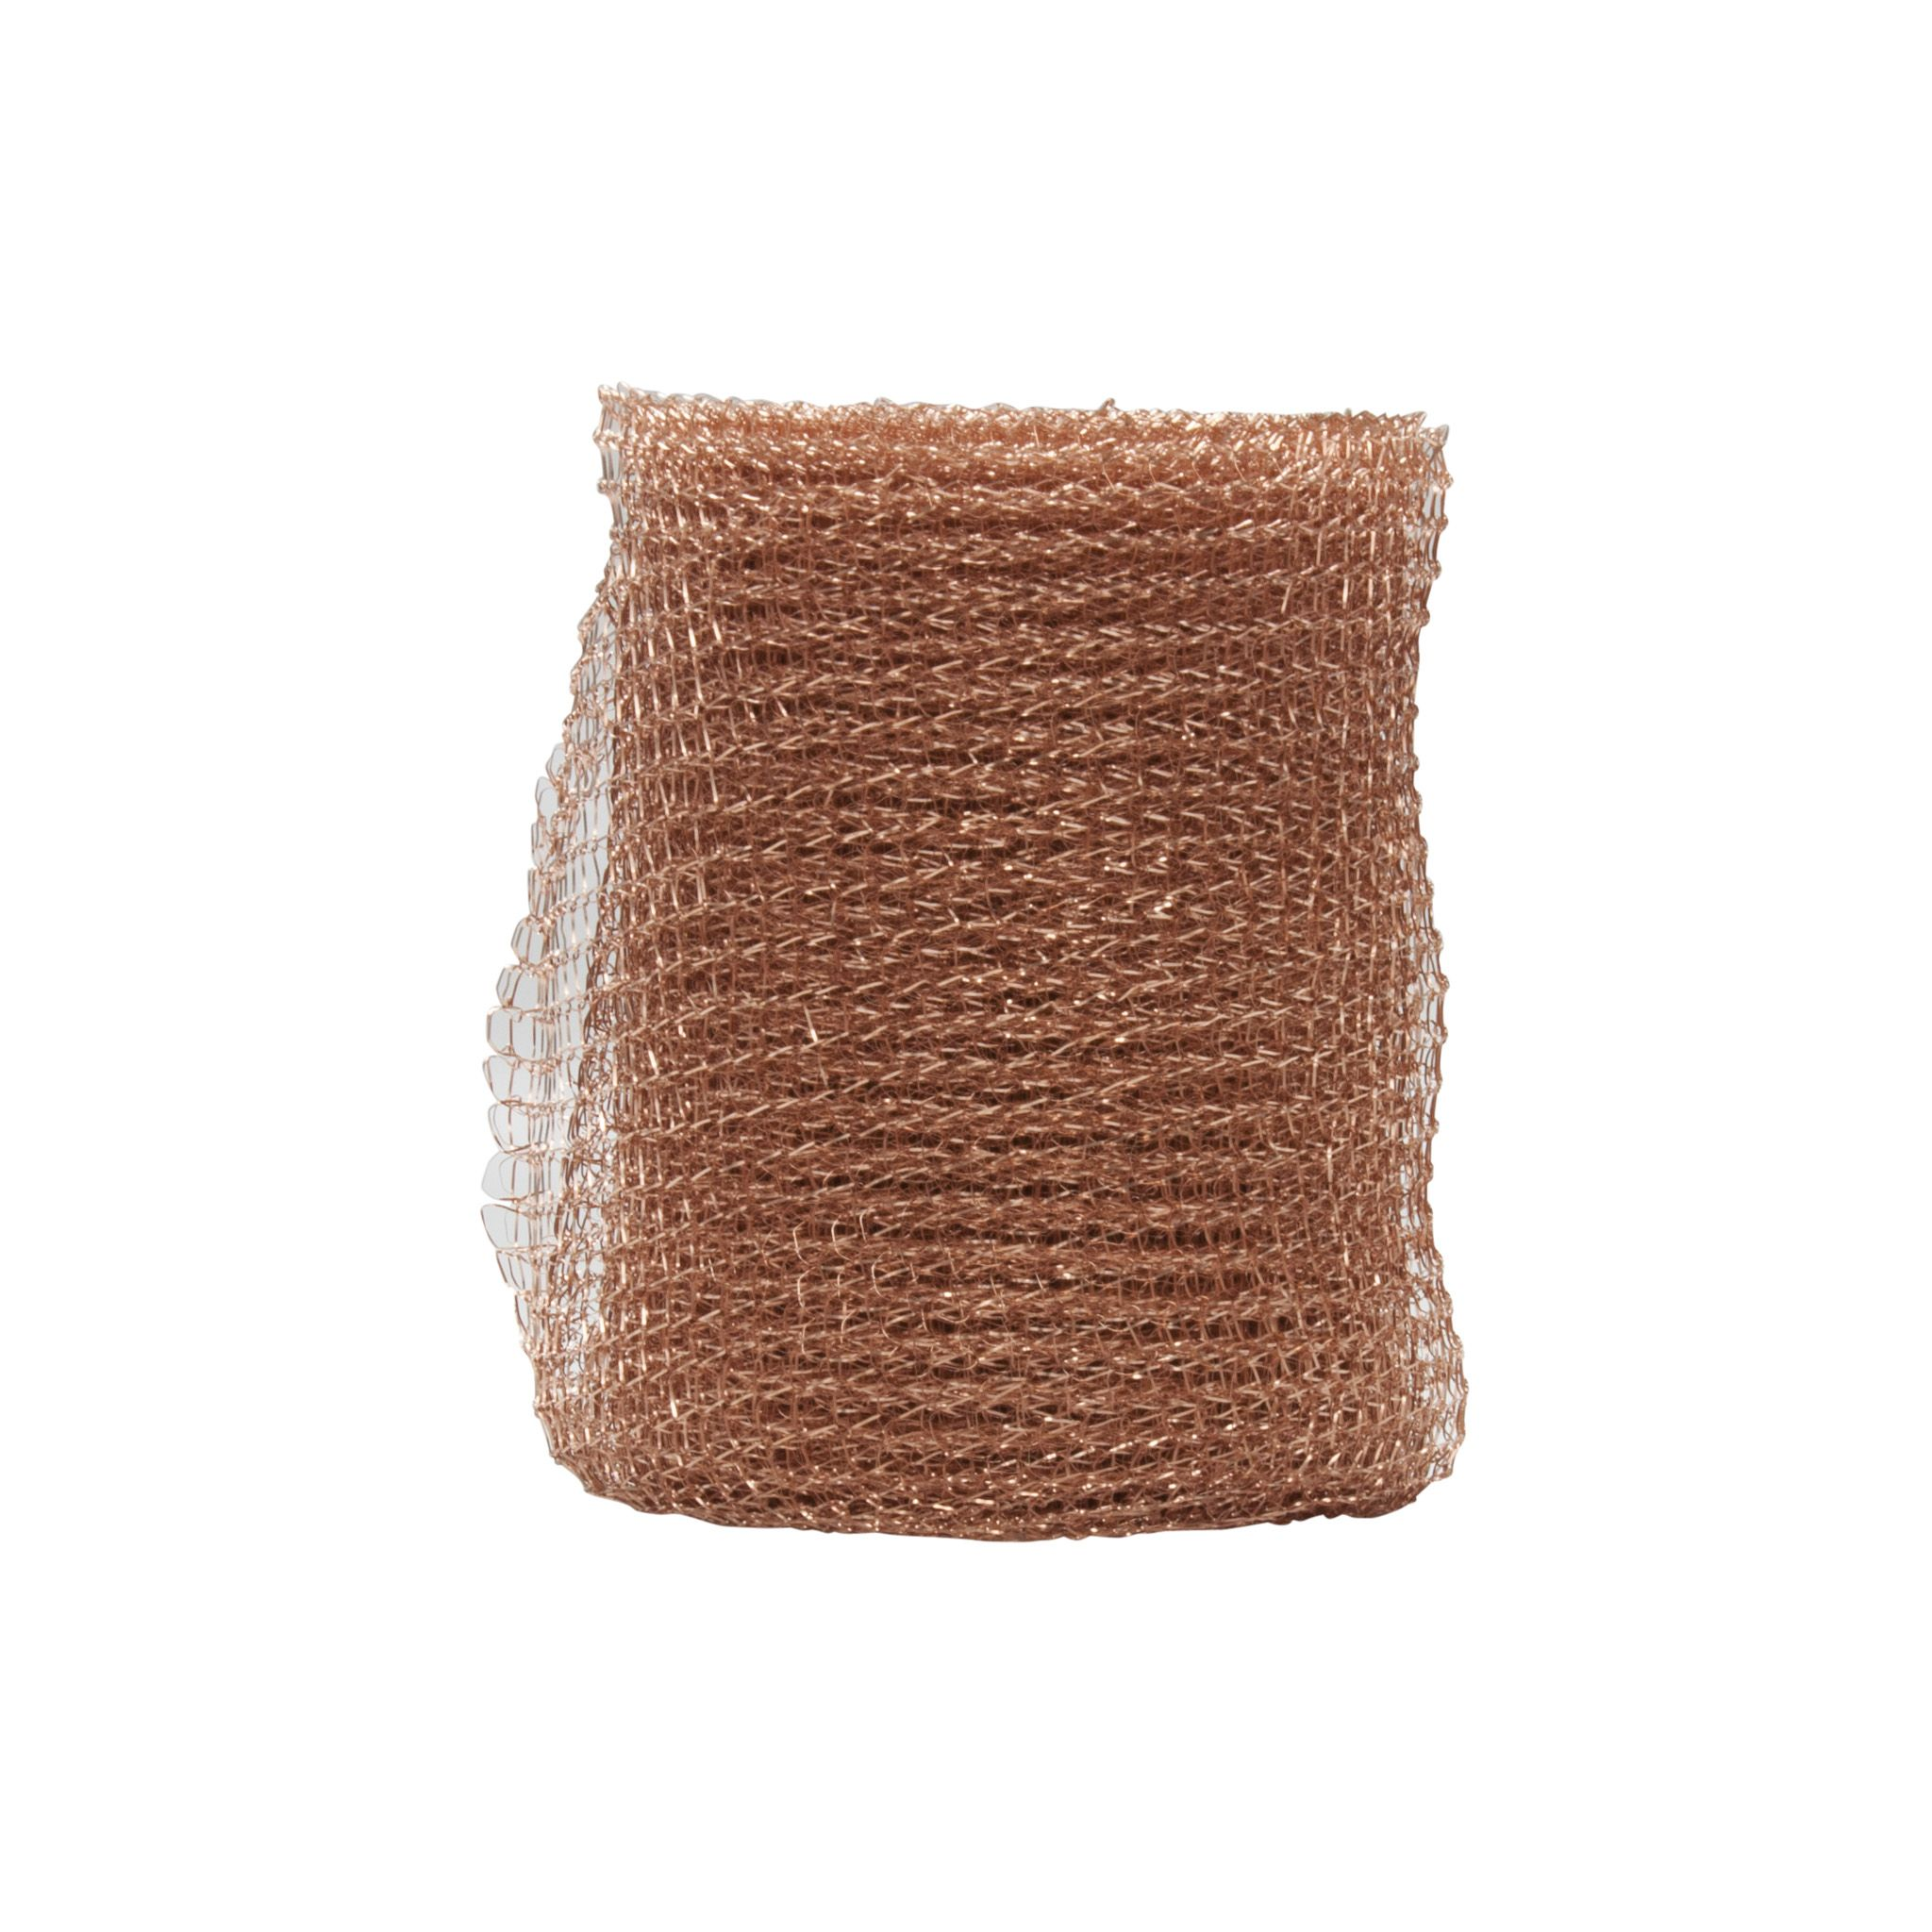 STUFFIT Copper Mesh Bees, wasps, Humming bird feeders